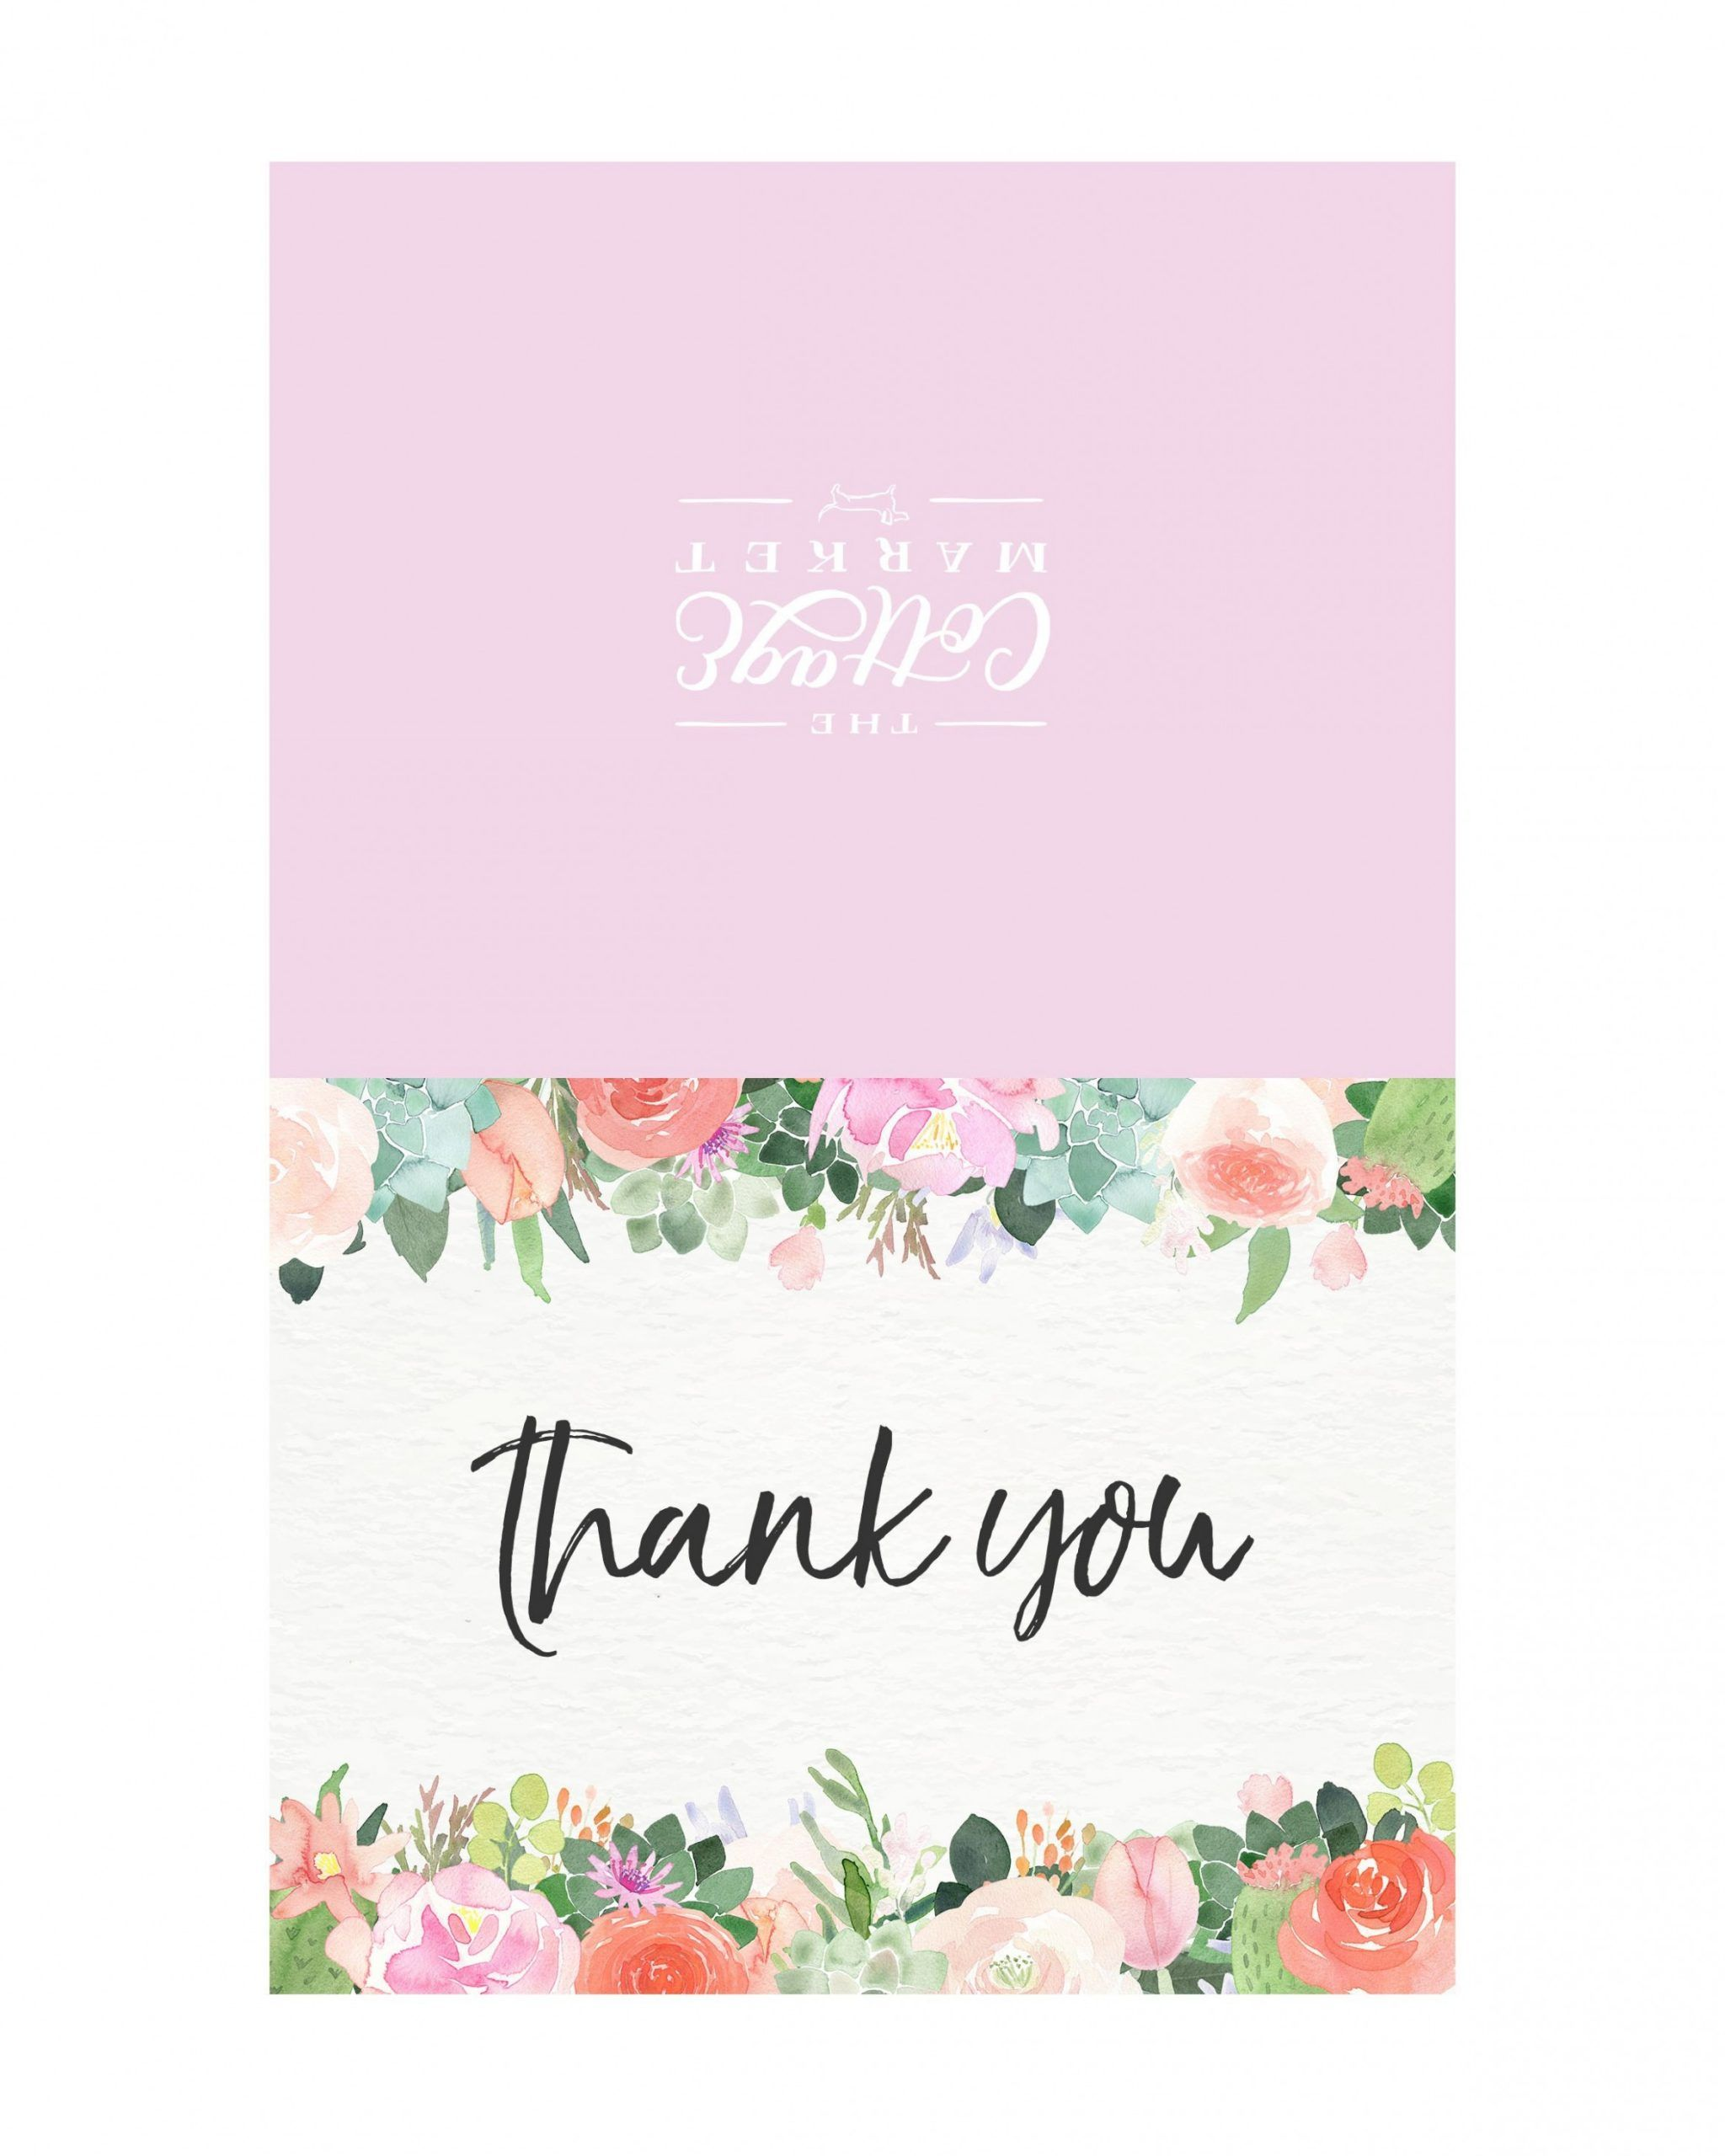 8 Best Print Thank You Cards In 2021 Printable Thank You Cards Note Card Template Print Thank You Cards